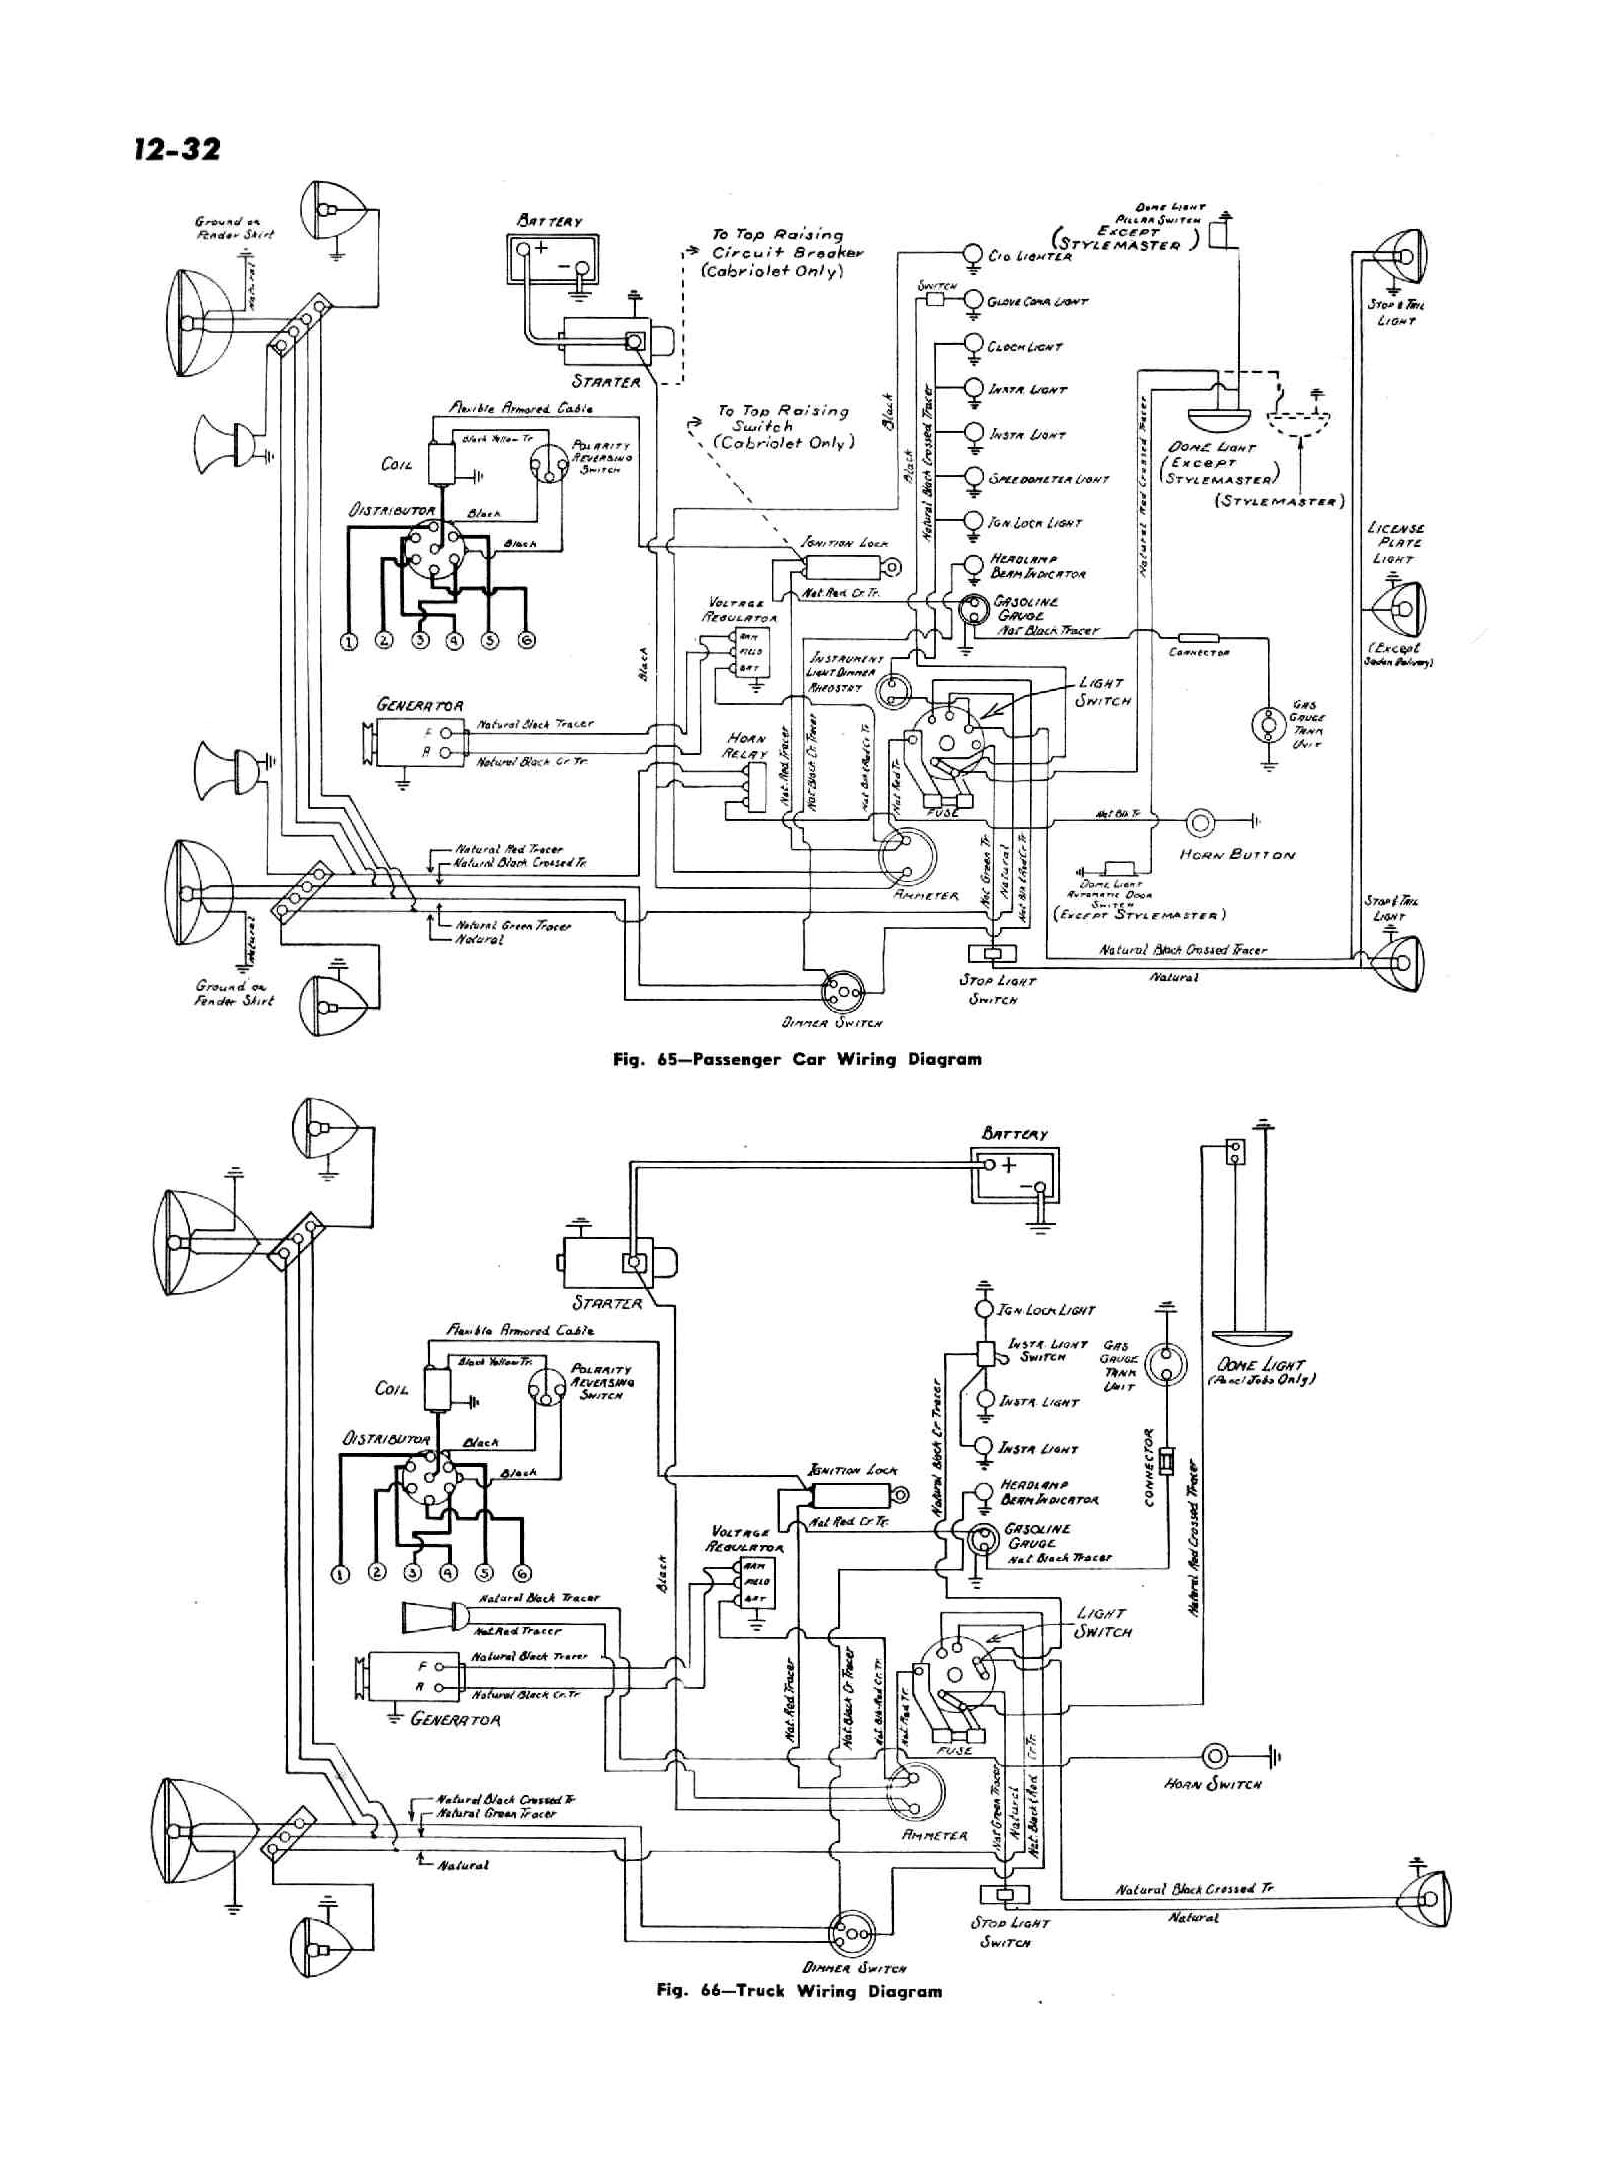 4247csm1232 chevy wiring diagrams 6 Volt Farmall H Wiring Diagram at fashall.co